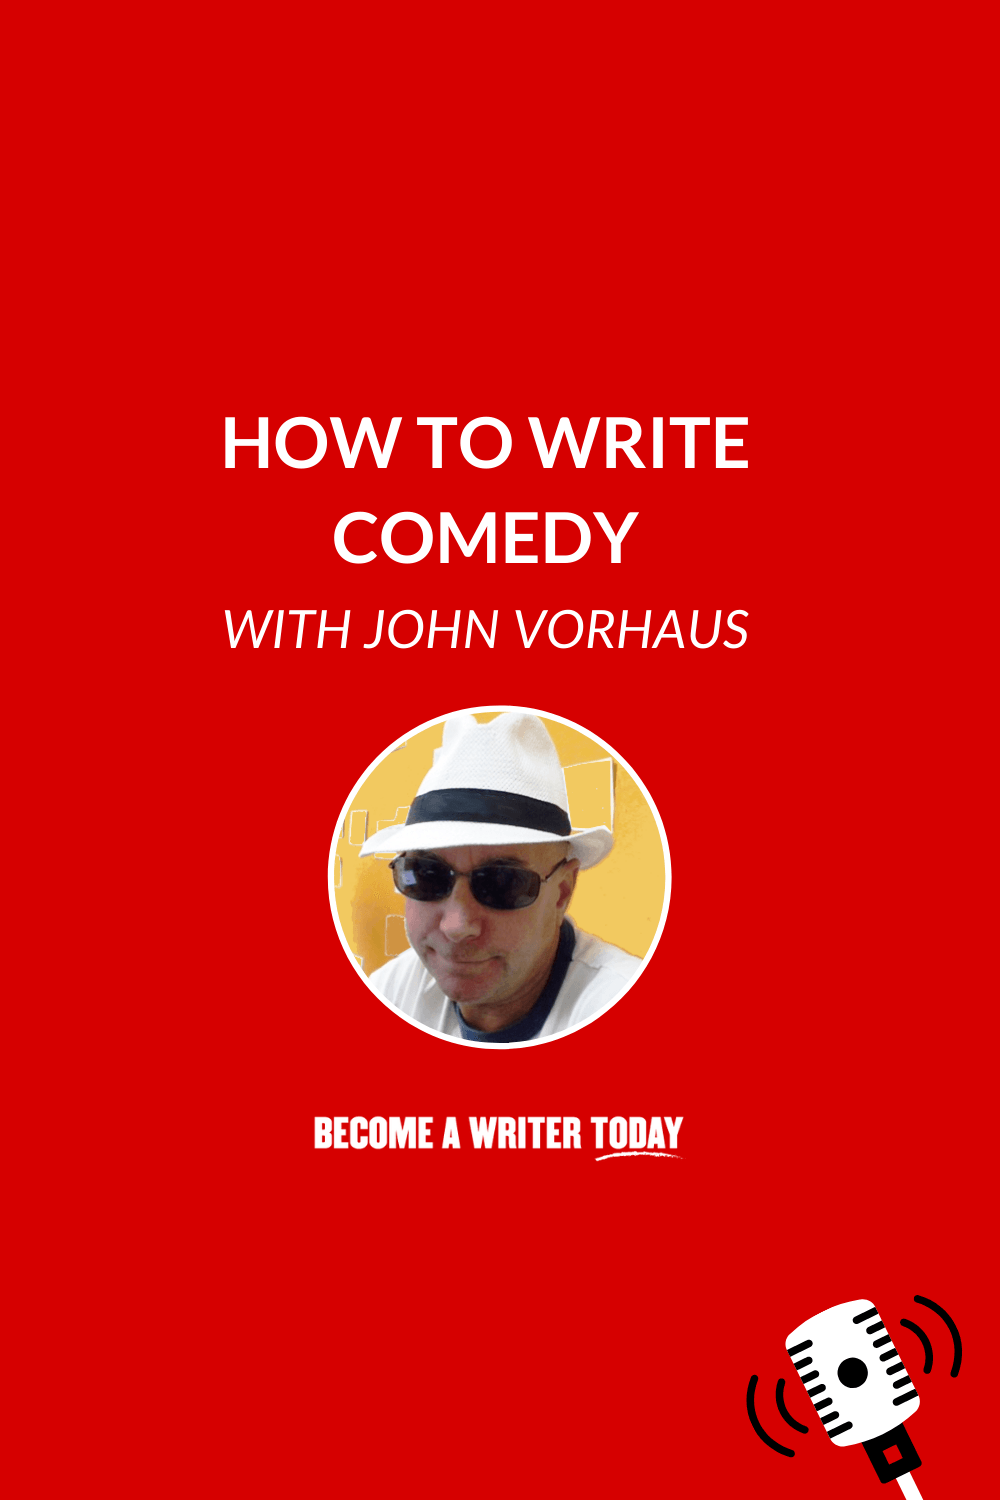 How to Write Comedy Even If You\'re Not Funny With John Vorhaus